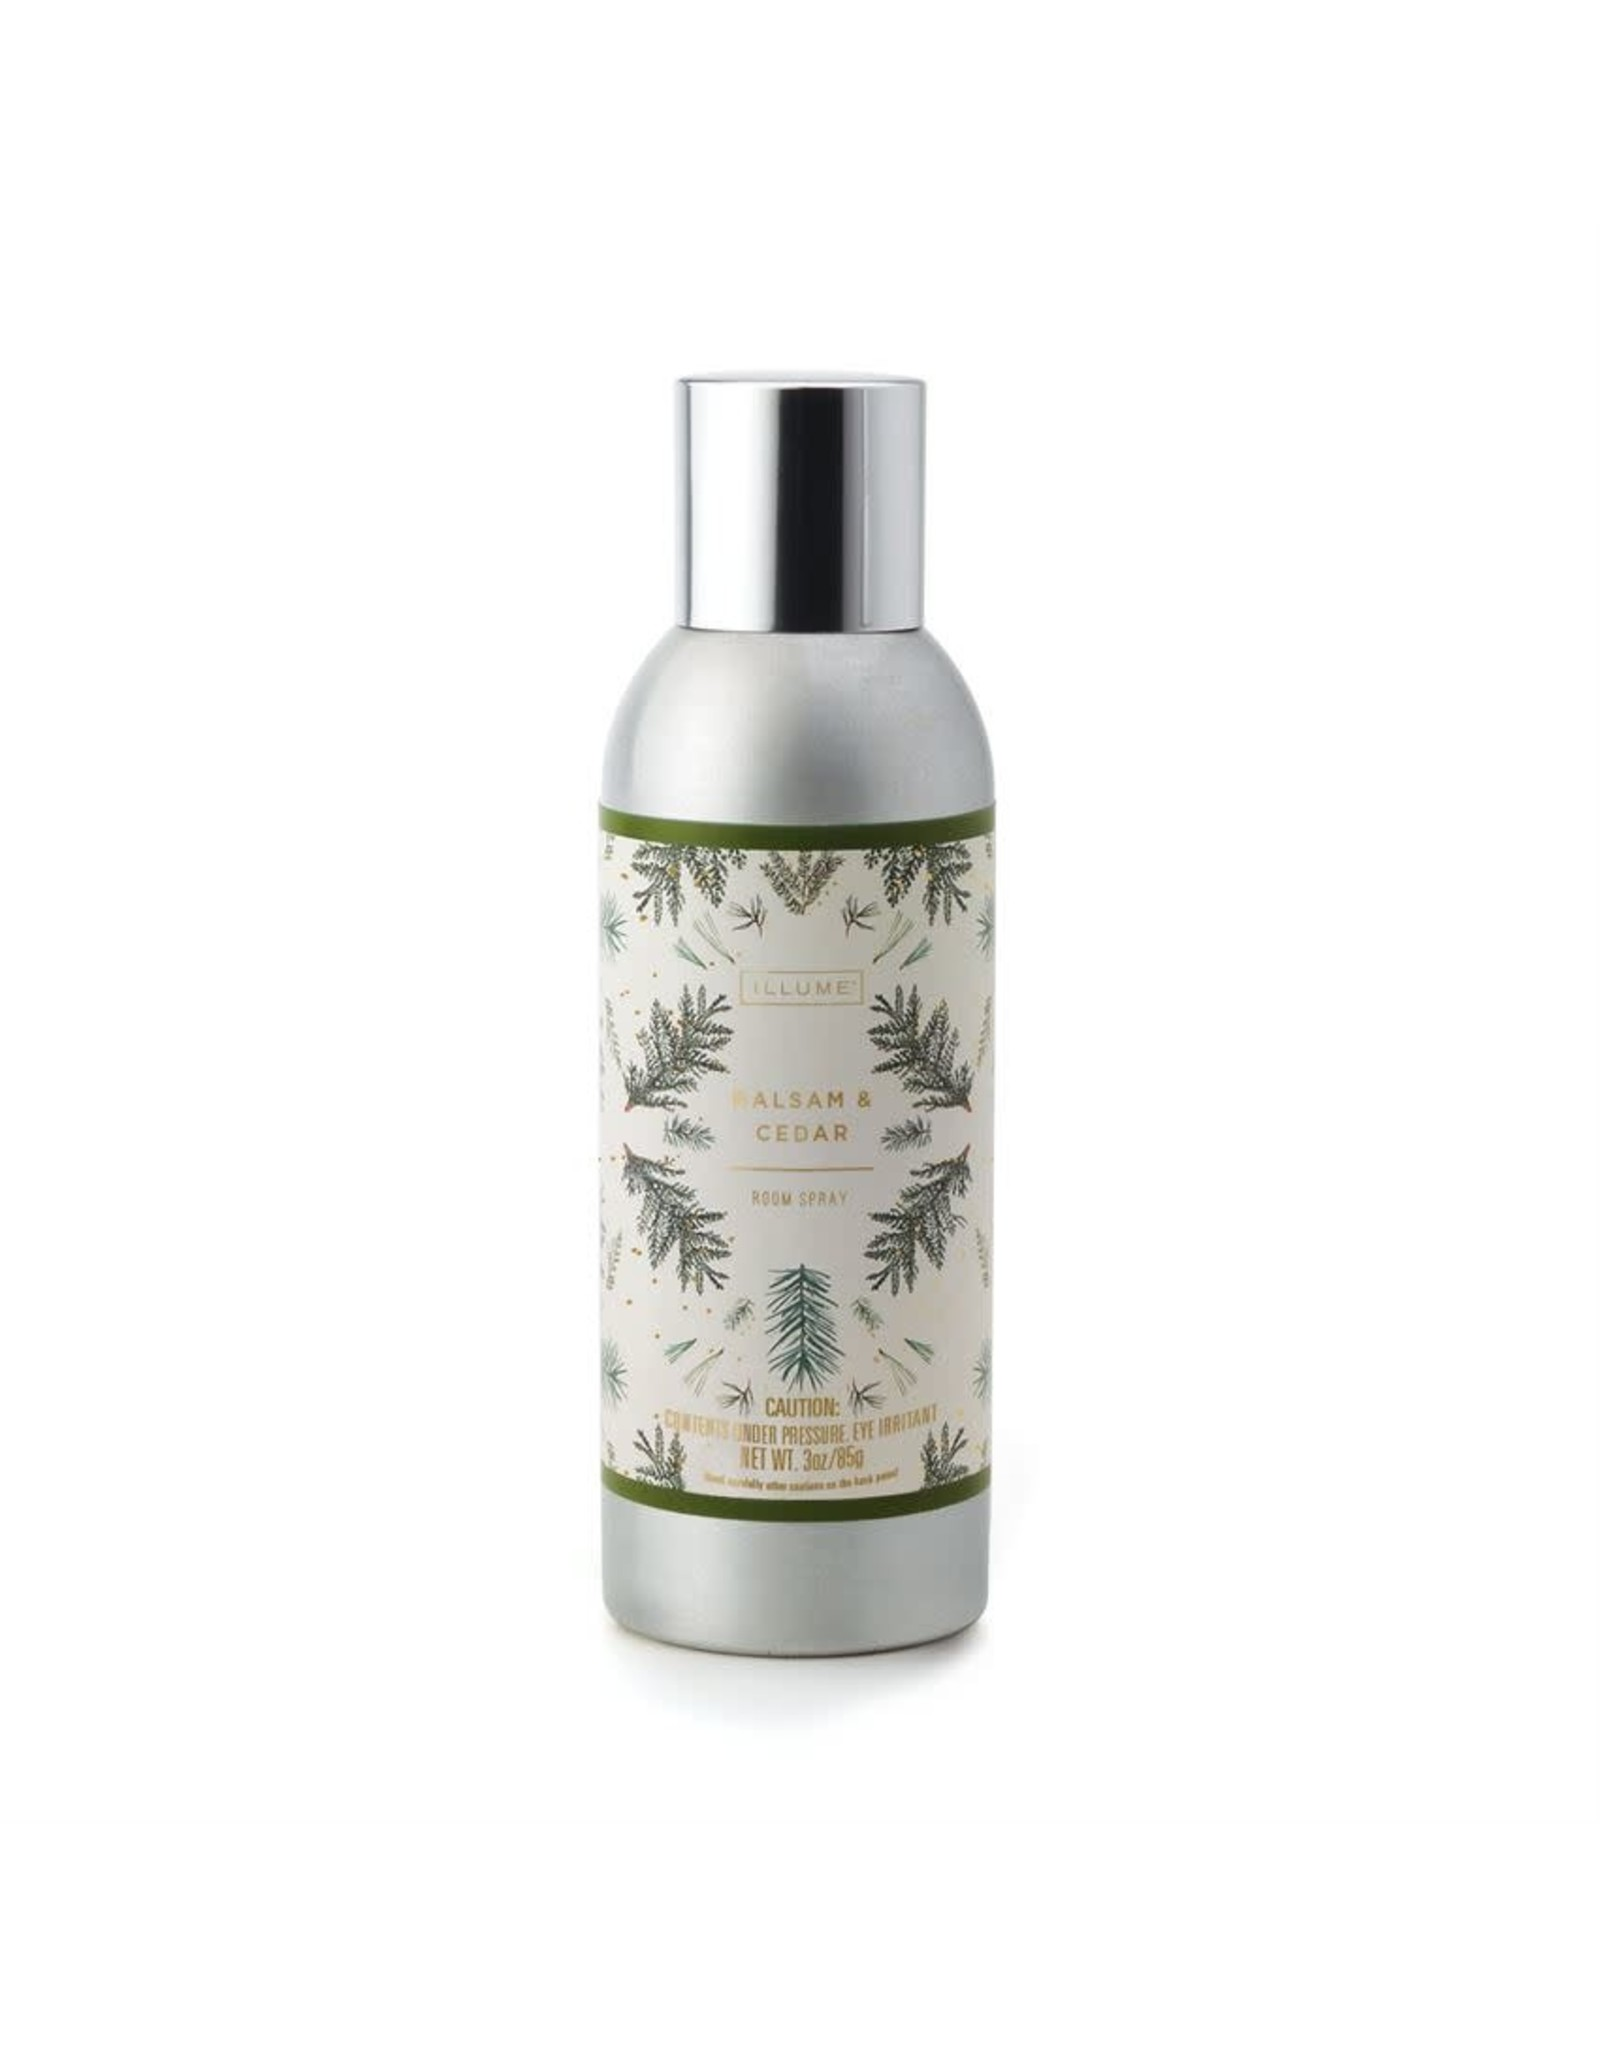 Oak + Arrow Interiors Balsam & Cedar Room Spray